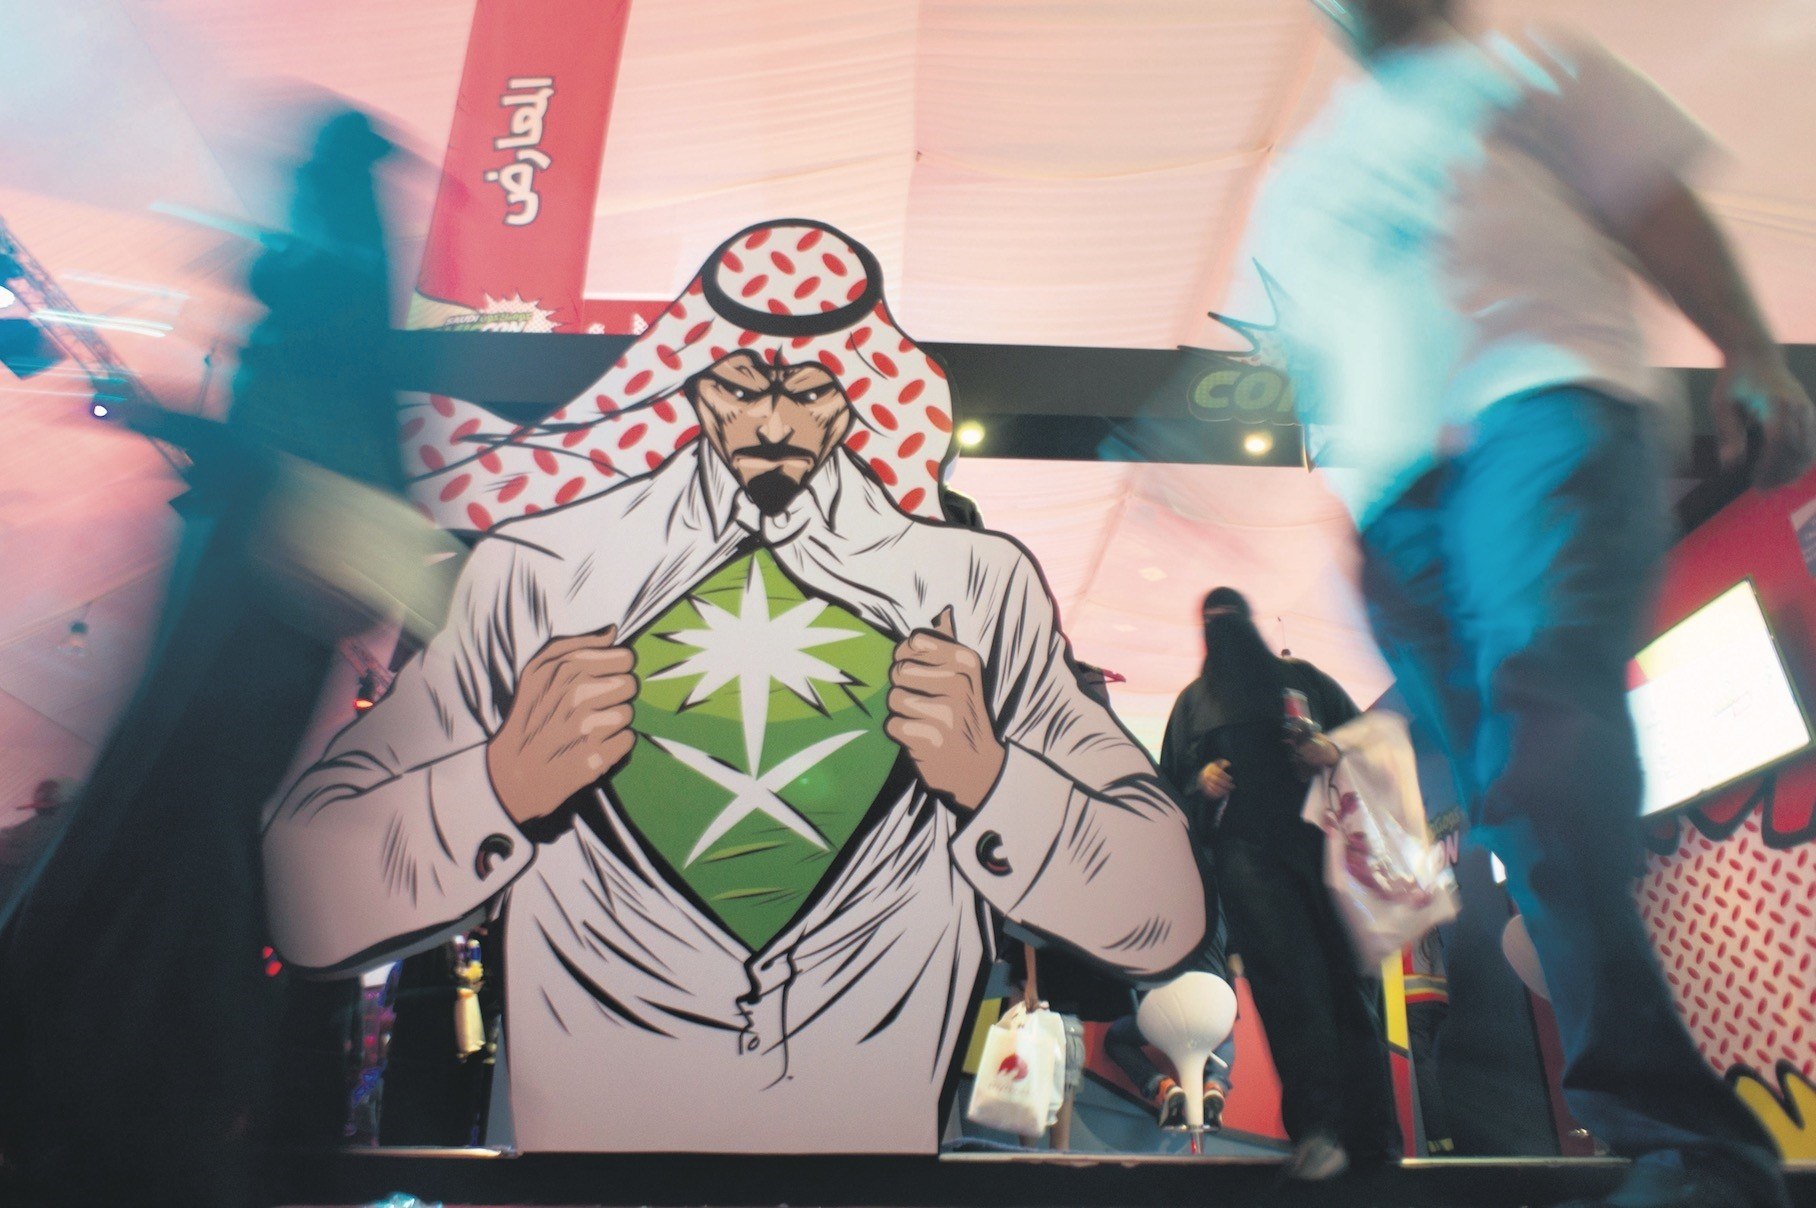 Visitors enter Saudi Comic Con (SCC), which was the first event of its kind to be held in Jeddah, Saudi Arabia.